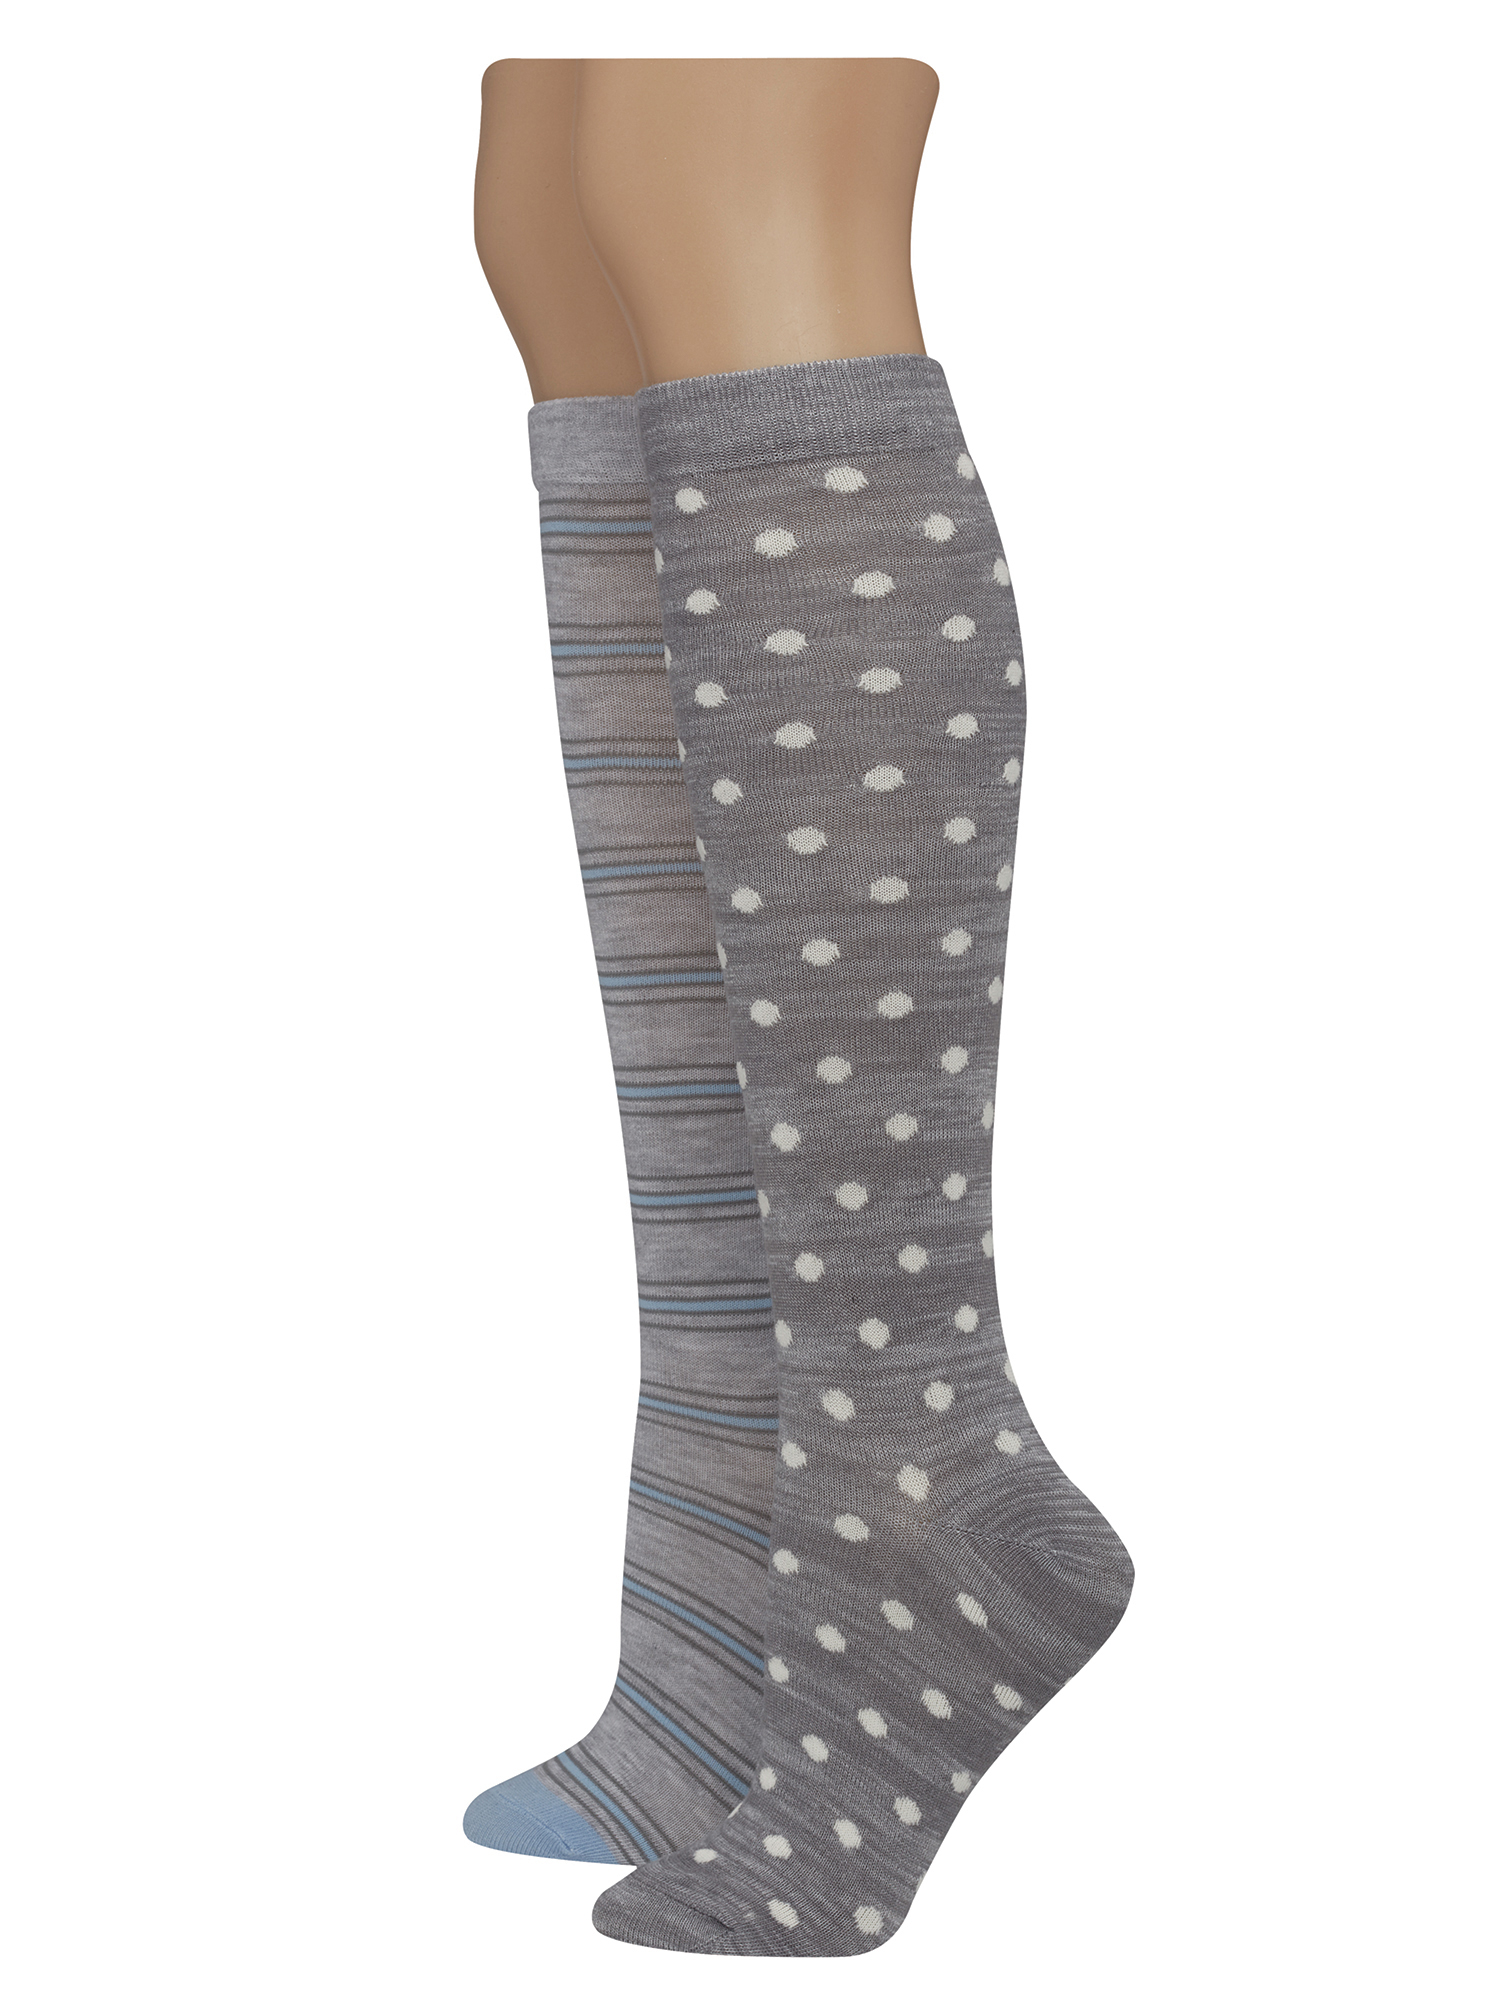 Women's Lifestyle Low Cut Socks, Giftable 3 Pair Pack